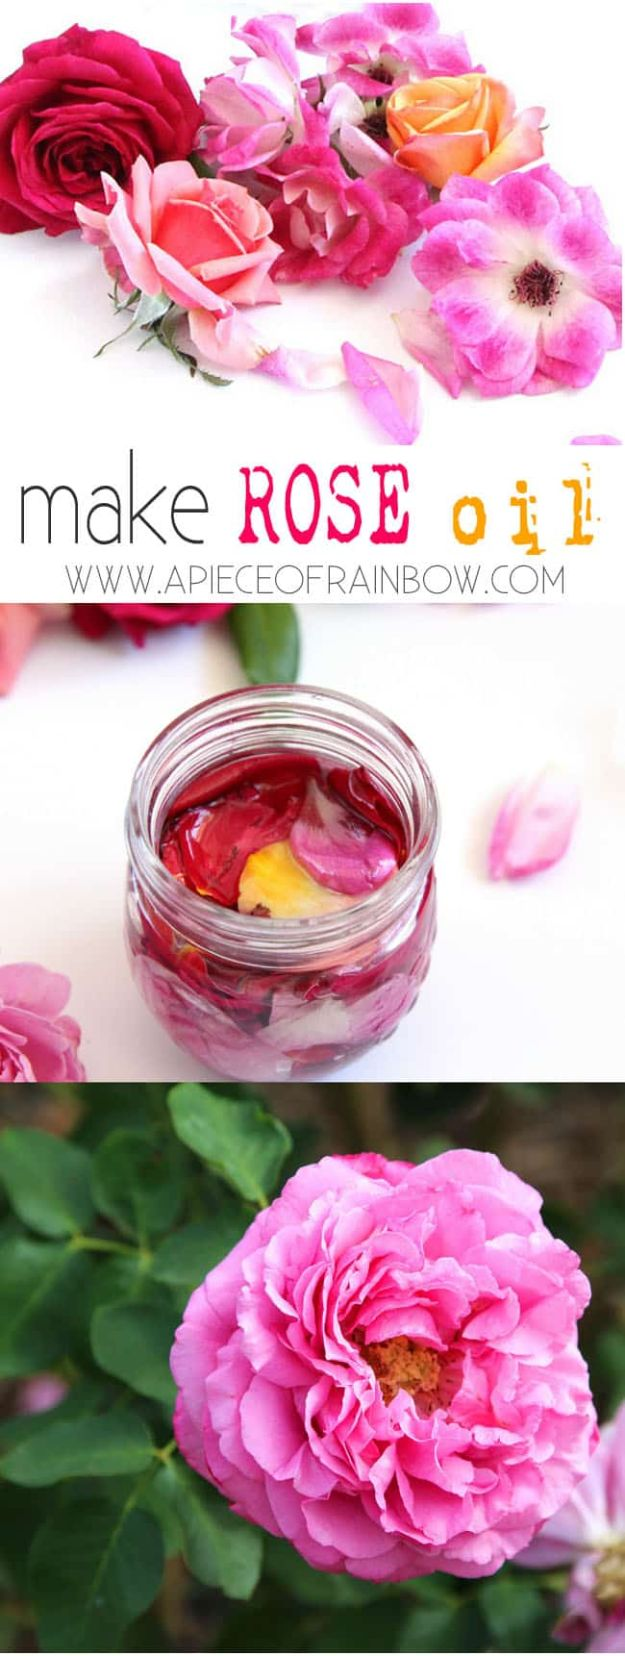 Rose Crafts - DIY Rose Oil - Easy Craft Projects With Roses - Paper Flowers, Quilt Patterns, DIY Rose Art for Kids - Dried and Real Roses for Wall Art and Do It Yourself Home Decor - Mothers Day Gift Ideas - Fake Rose Arrangements That Look Amazing - Cute Centerrpieces and Crafty DIY Gifts With A Rose http://diyjoy.com/rose-crafts